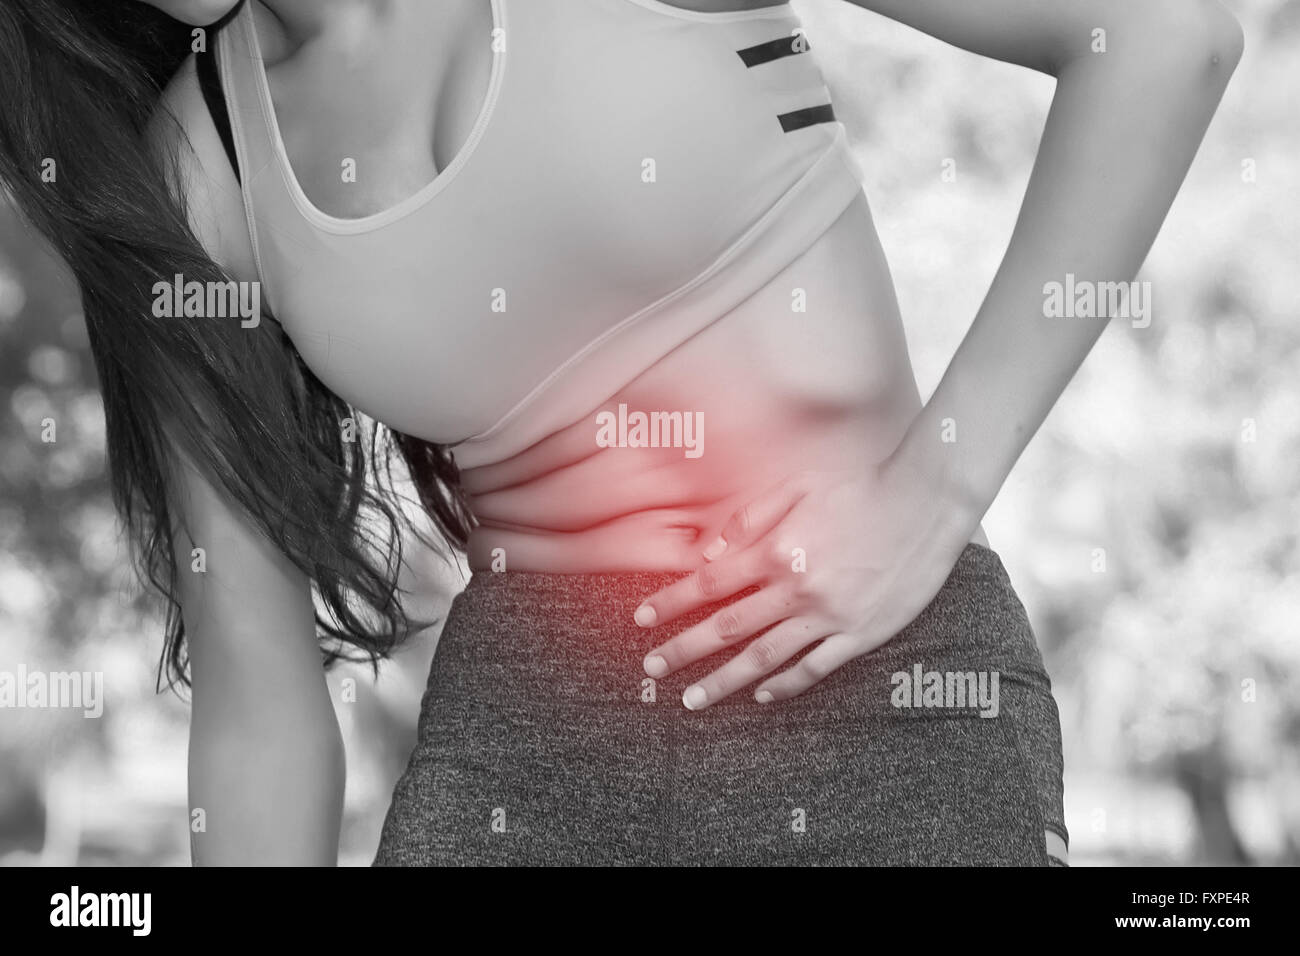 Woman in sport bra having a stomachache / food poisoning / stomach problems / womb problems / menstruation pain - Stock Image